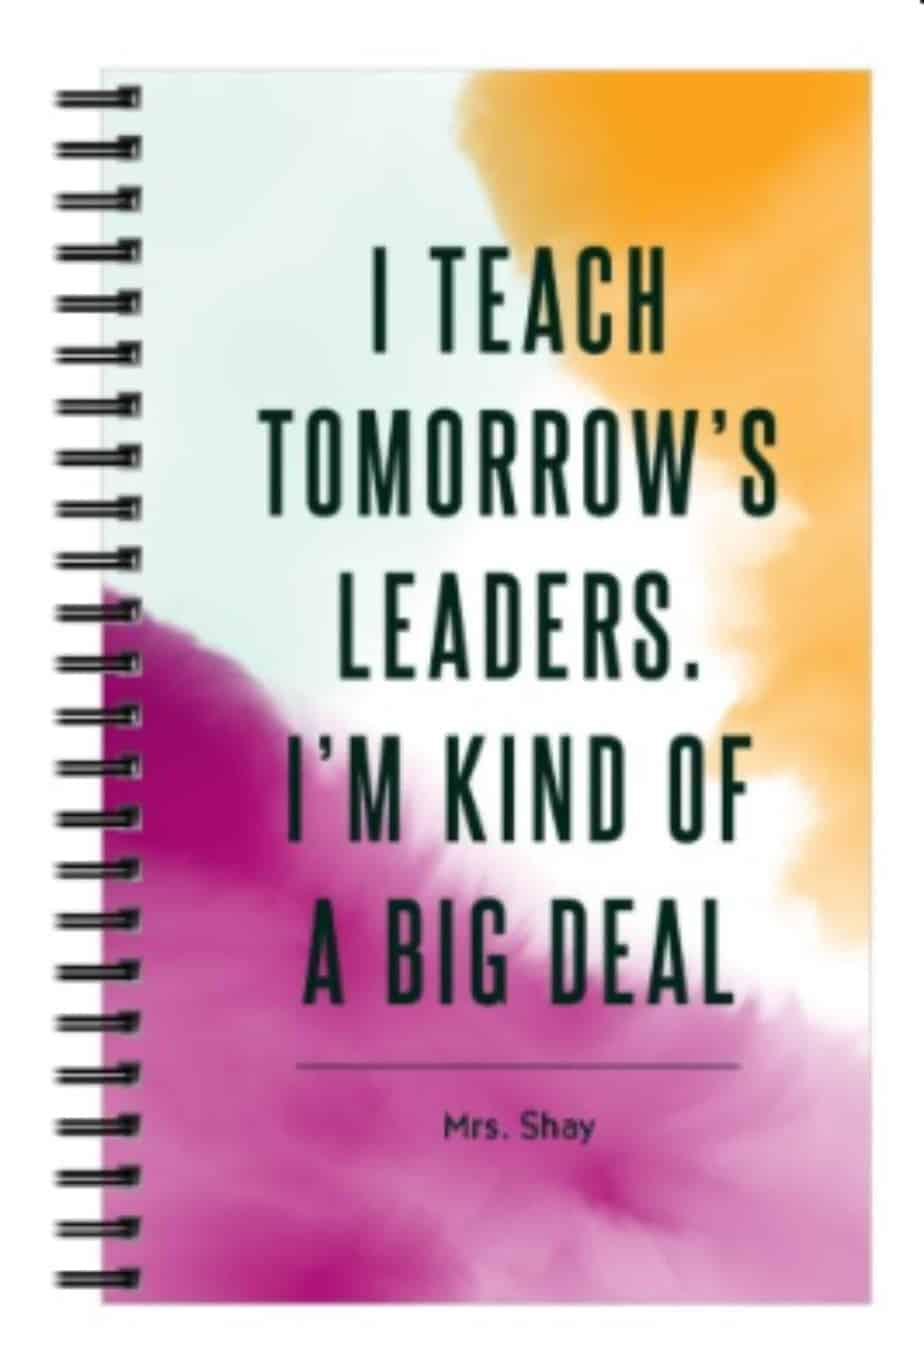 Personalized notebook teacher gift